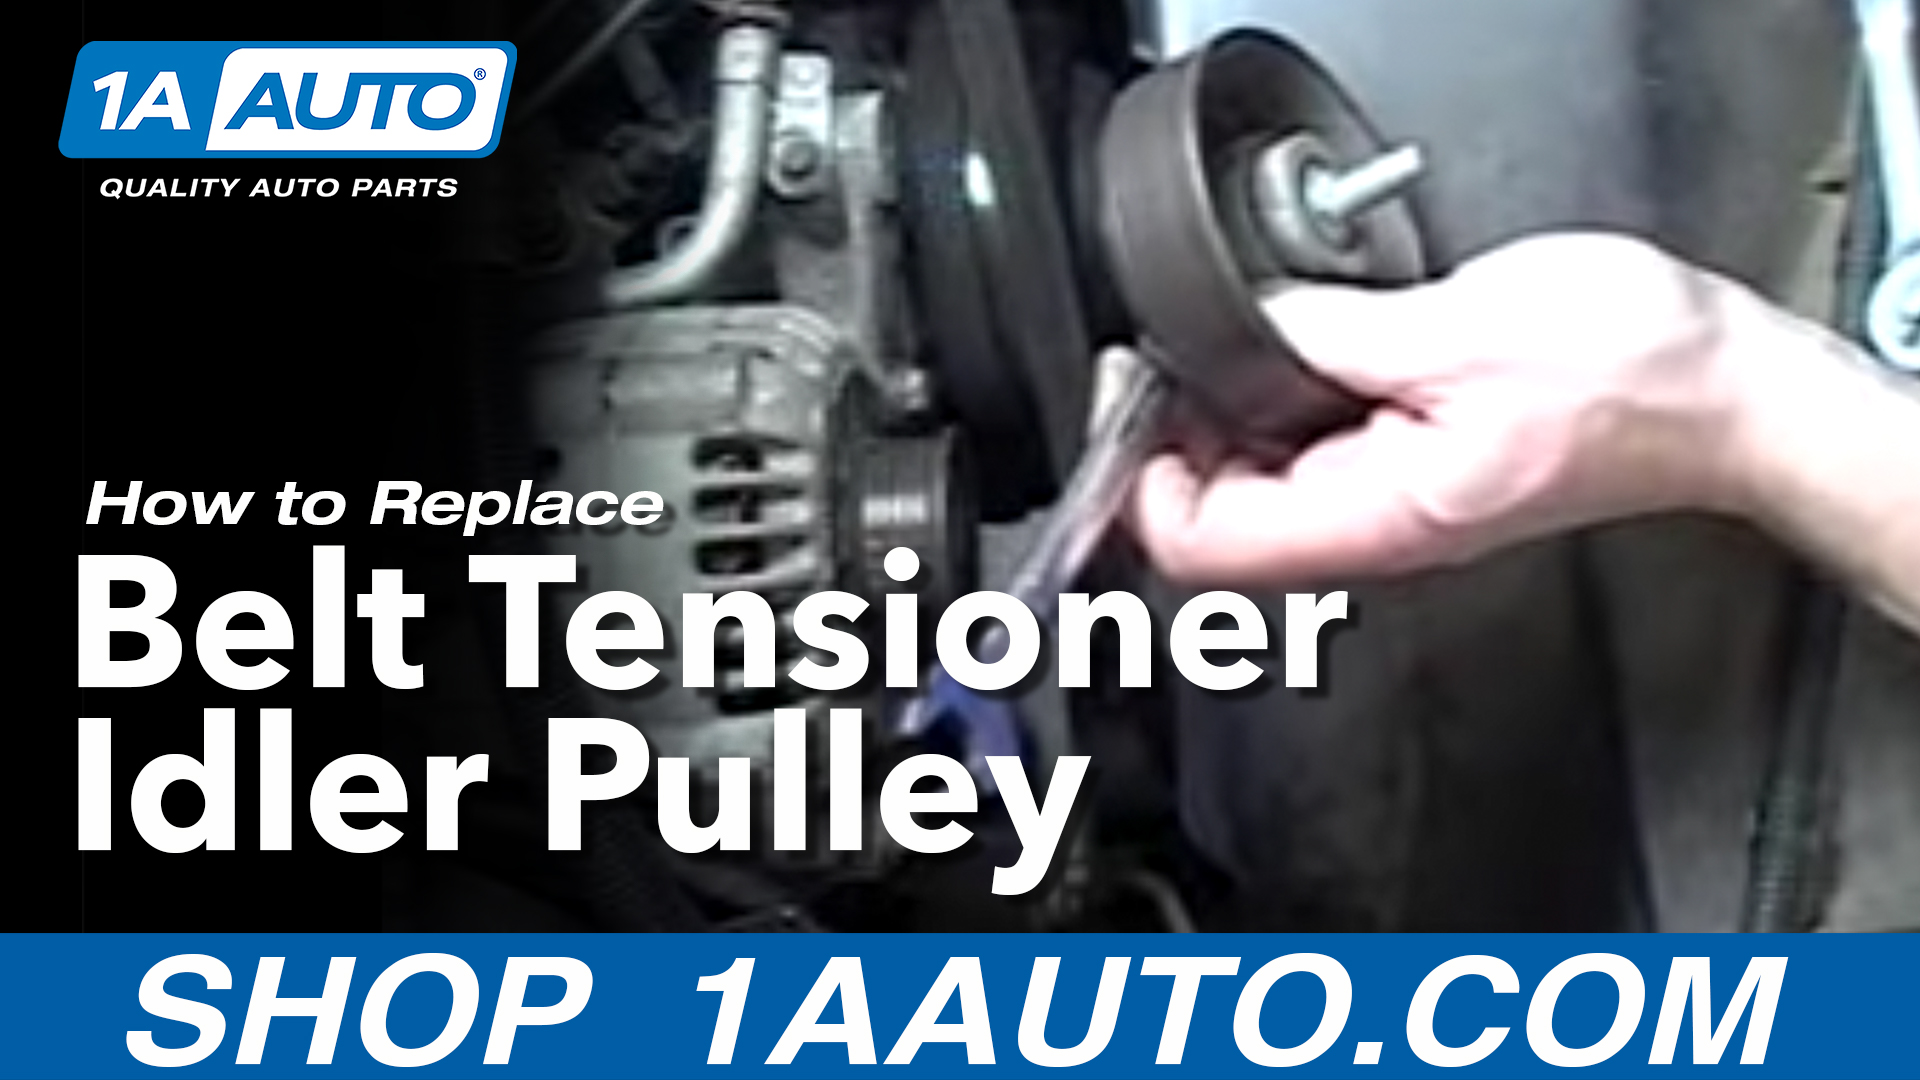 2005 s10 belt diagram how to replace belt tensioner 92 99 chevy suburban 1a auto  belt tensioner 92 99 chevy suburban